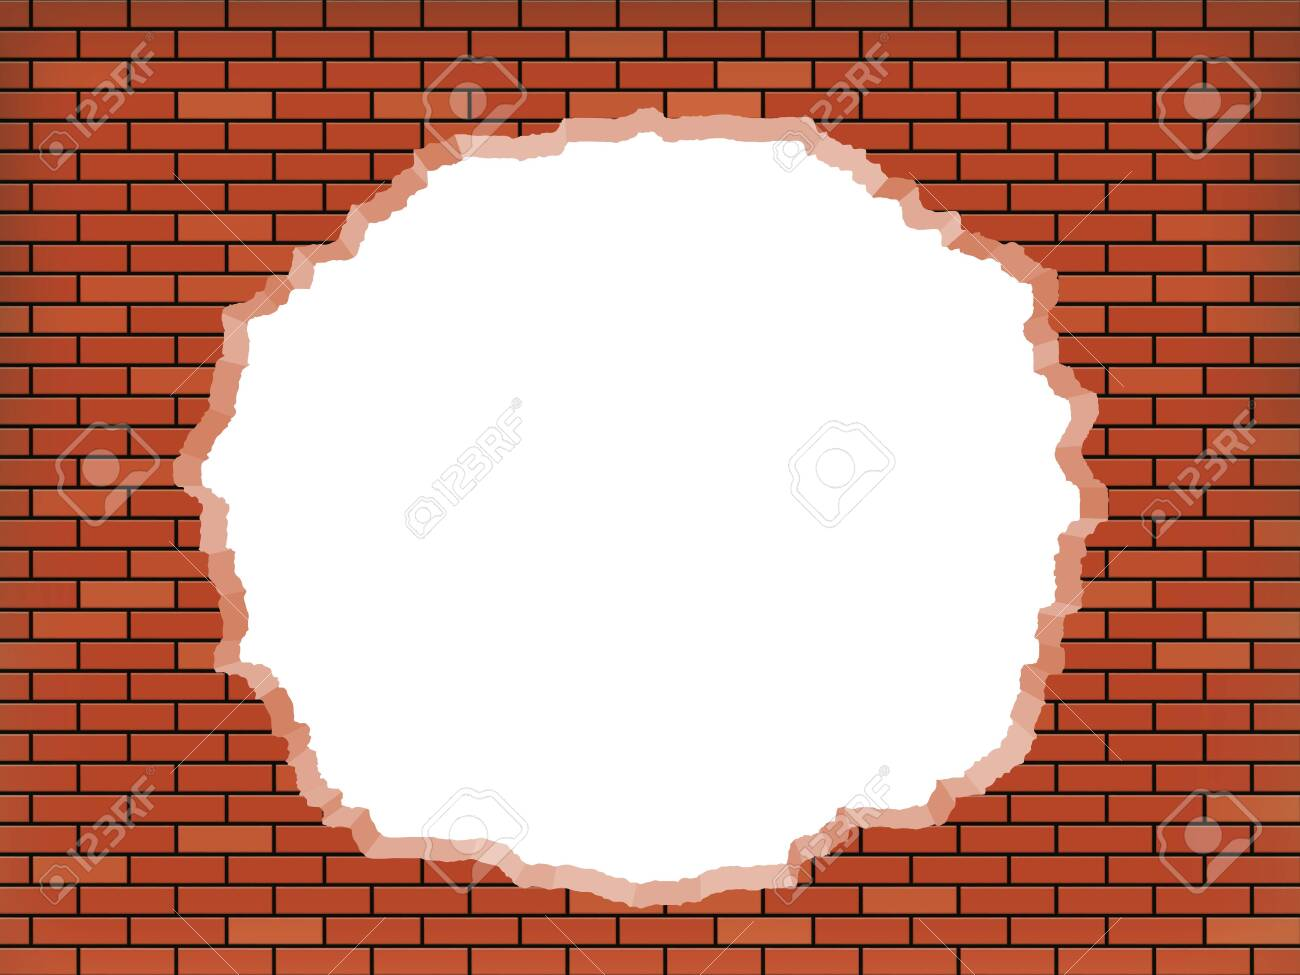 White hole in broken red brick wall. Vector background. - 143953775